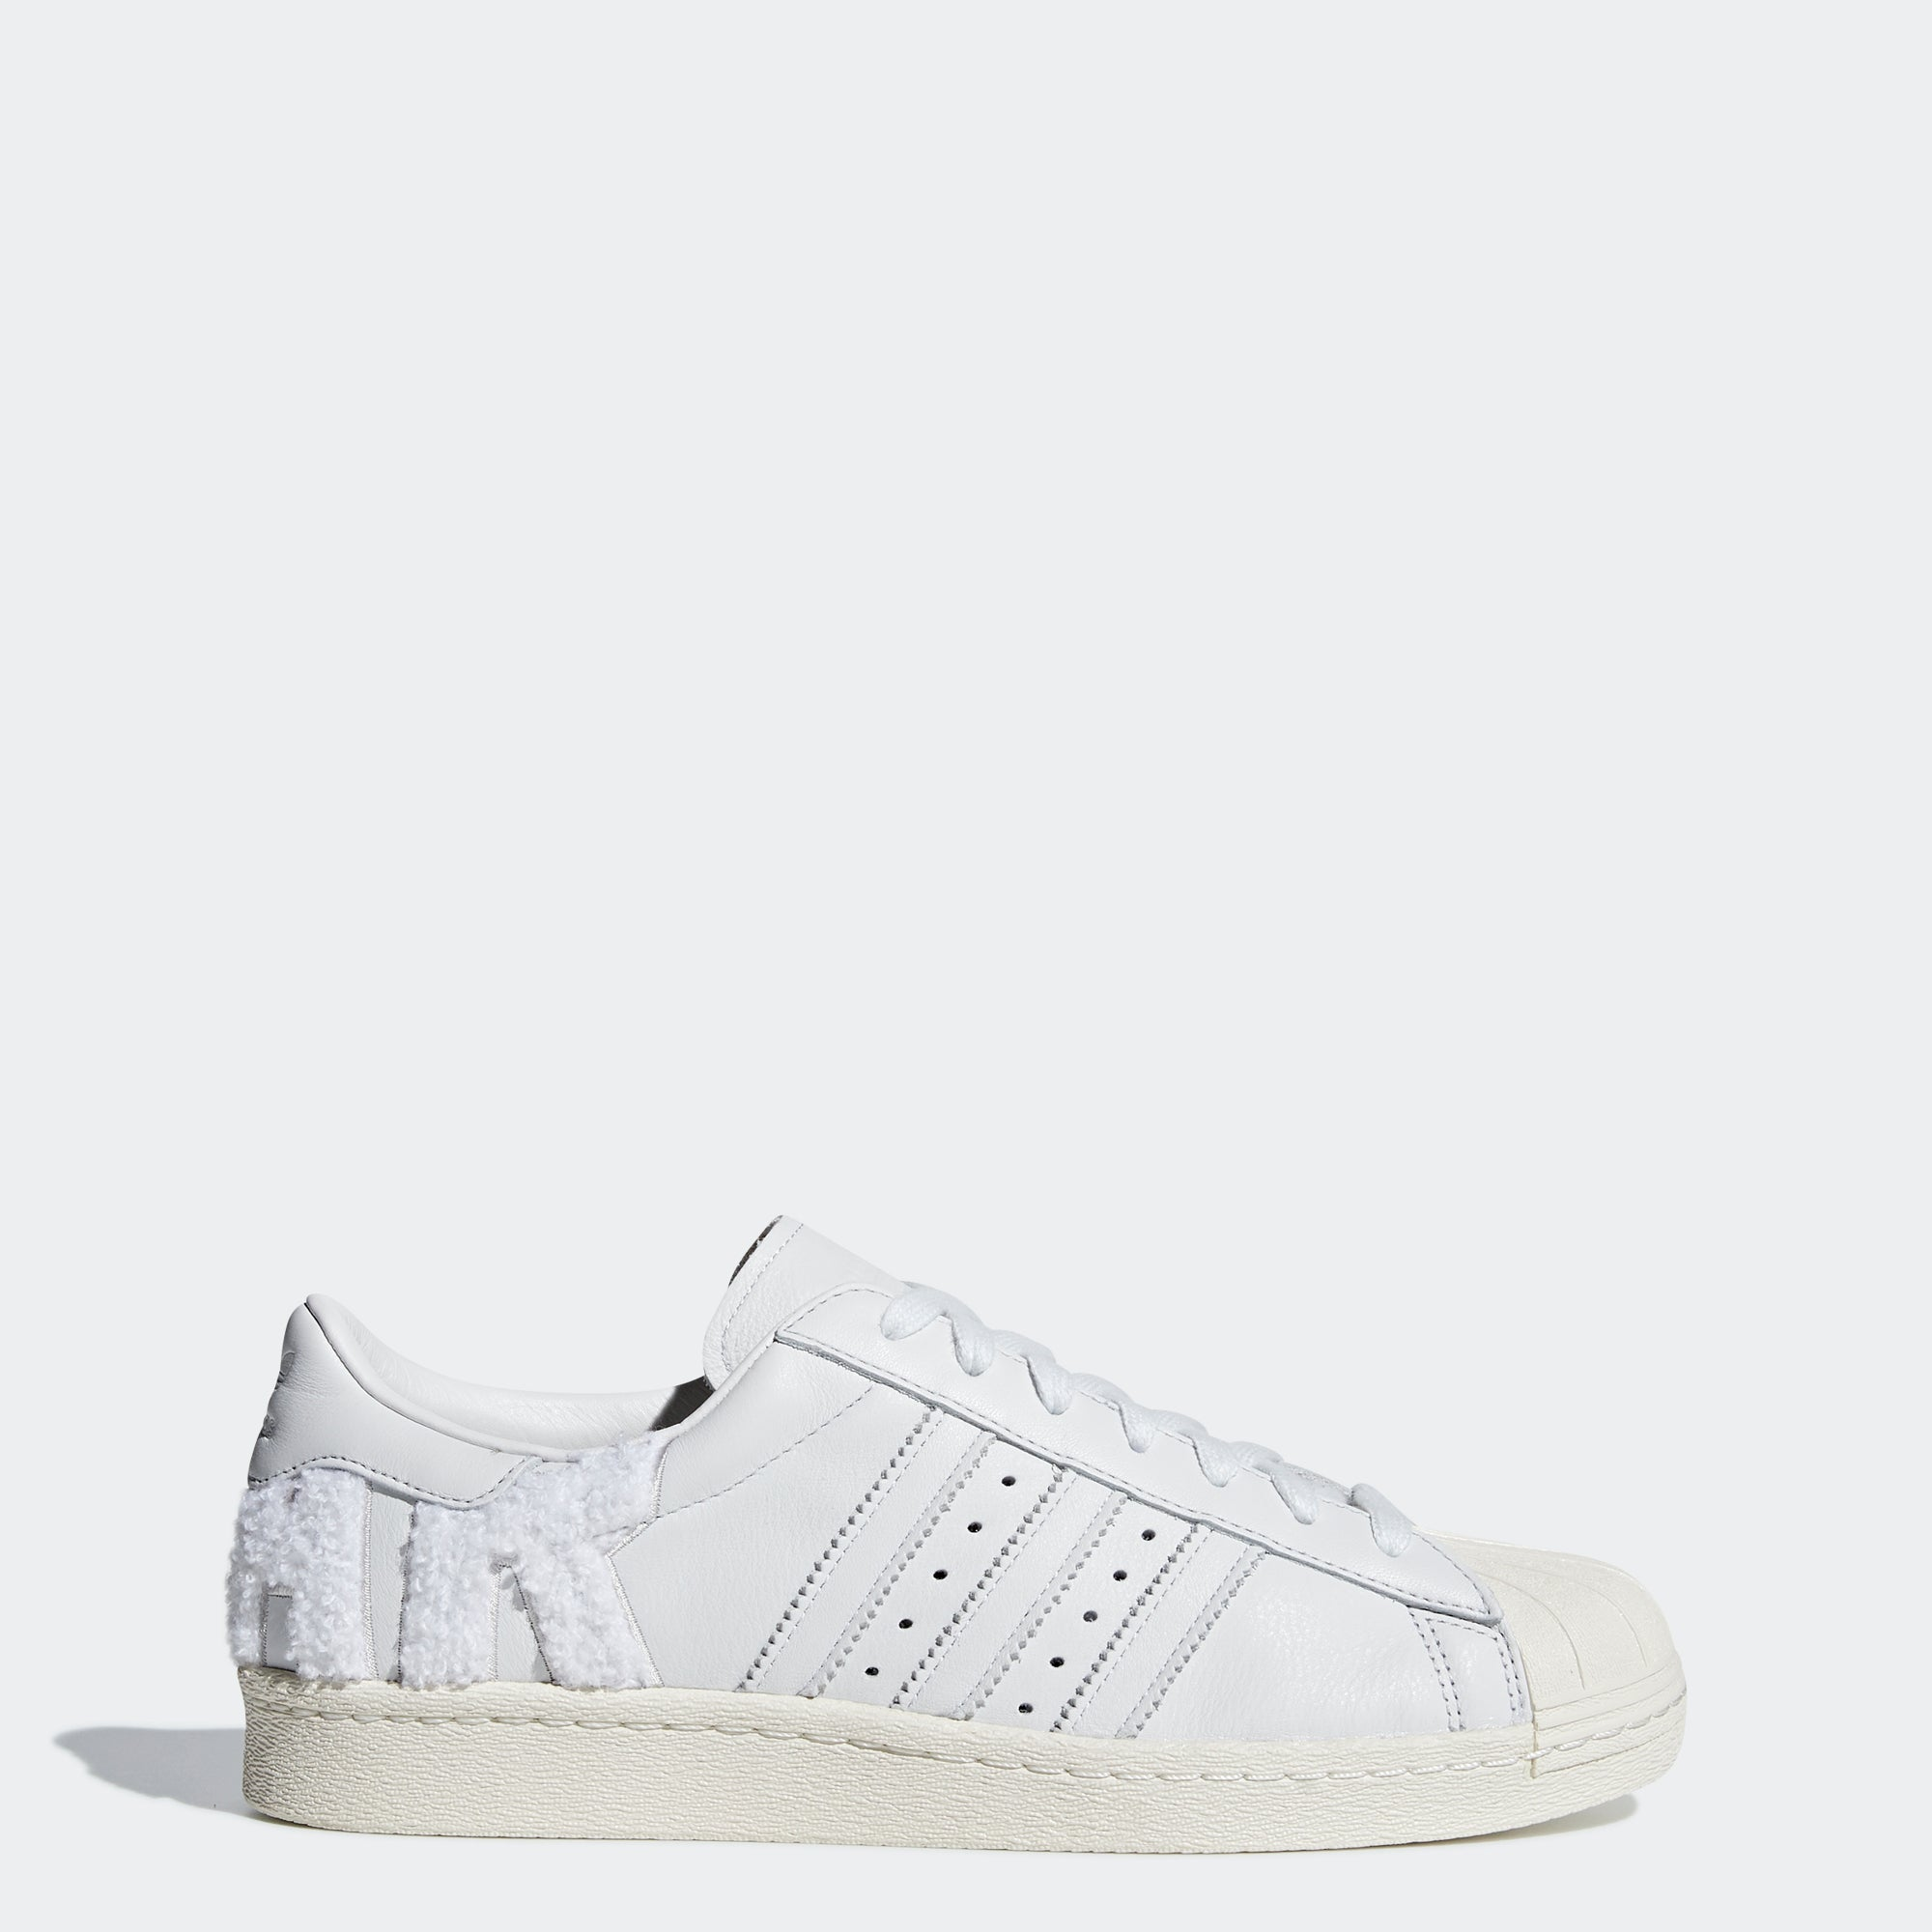 competitive price 5bf45 0de9b adidas Superstar 80s Shoes Crystal White B37995 | Chicago ...